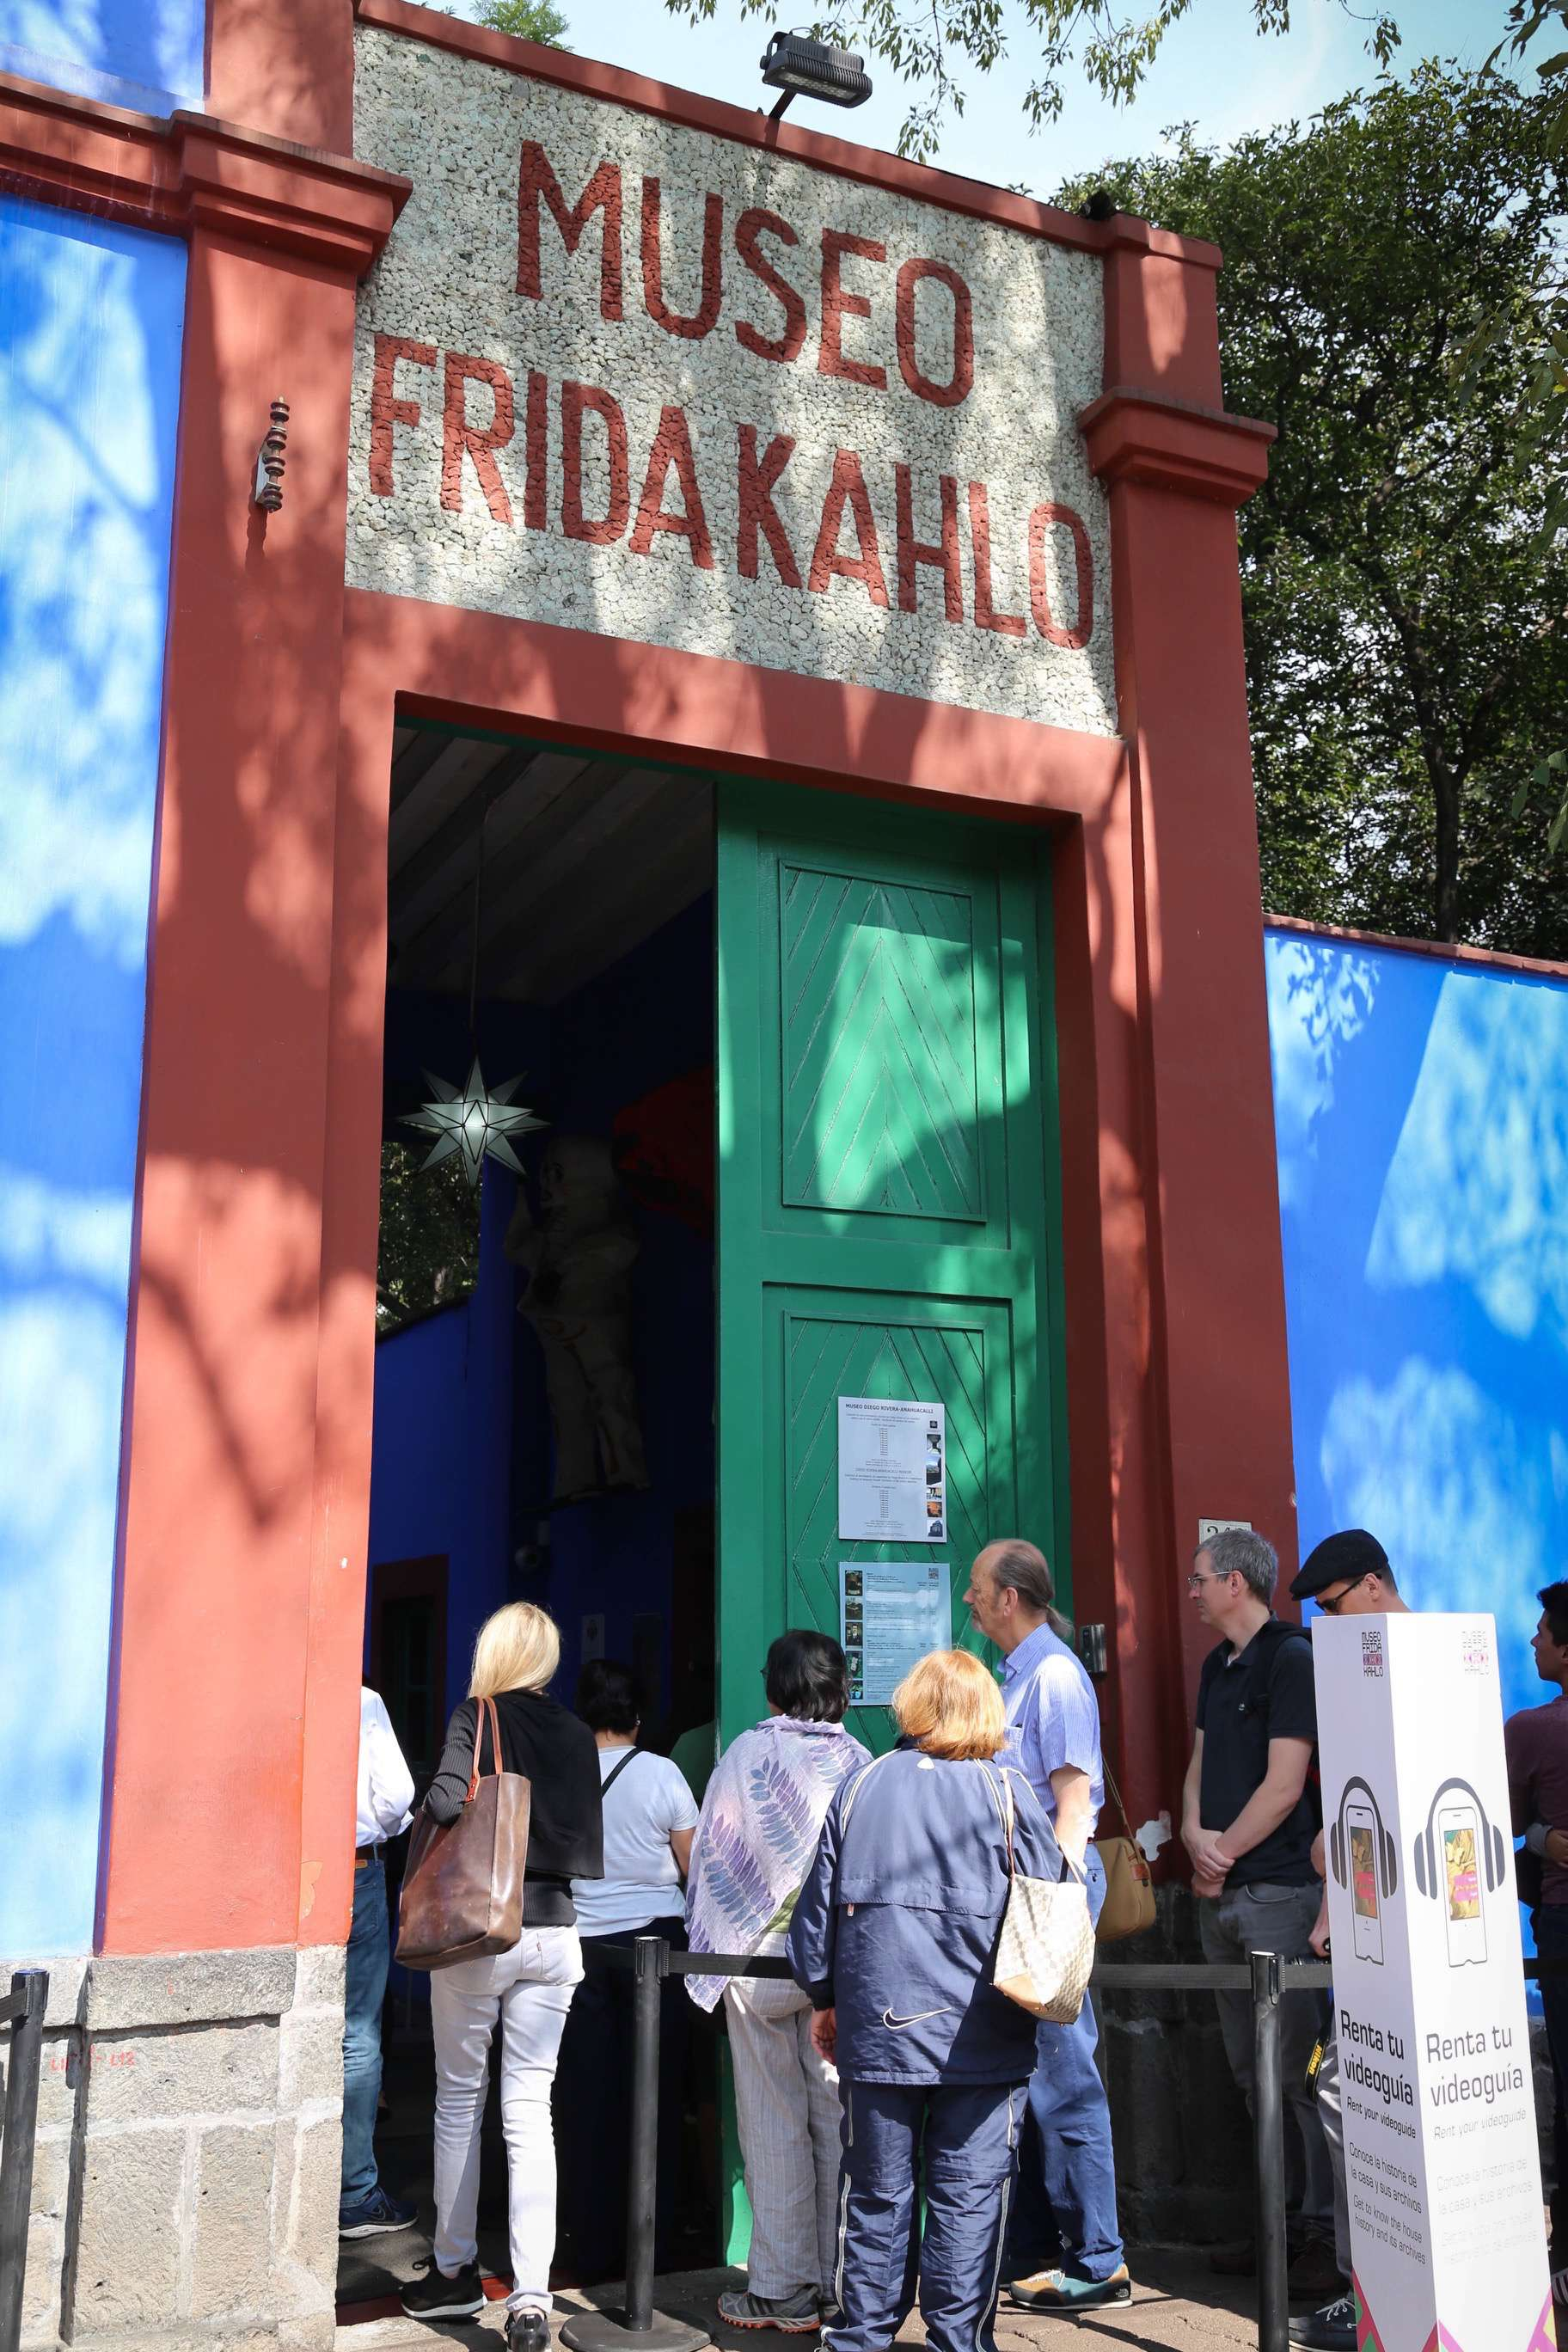 Visitors from all over the world visit Frida Kahlo's Casa Azul, in the Coyocan, now part of Mexico City.